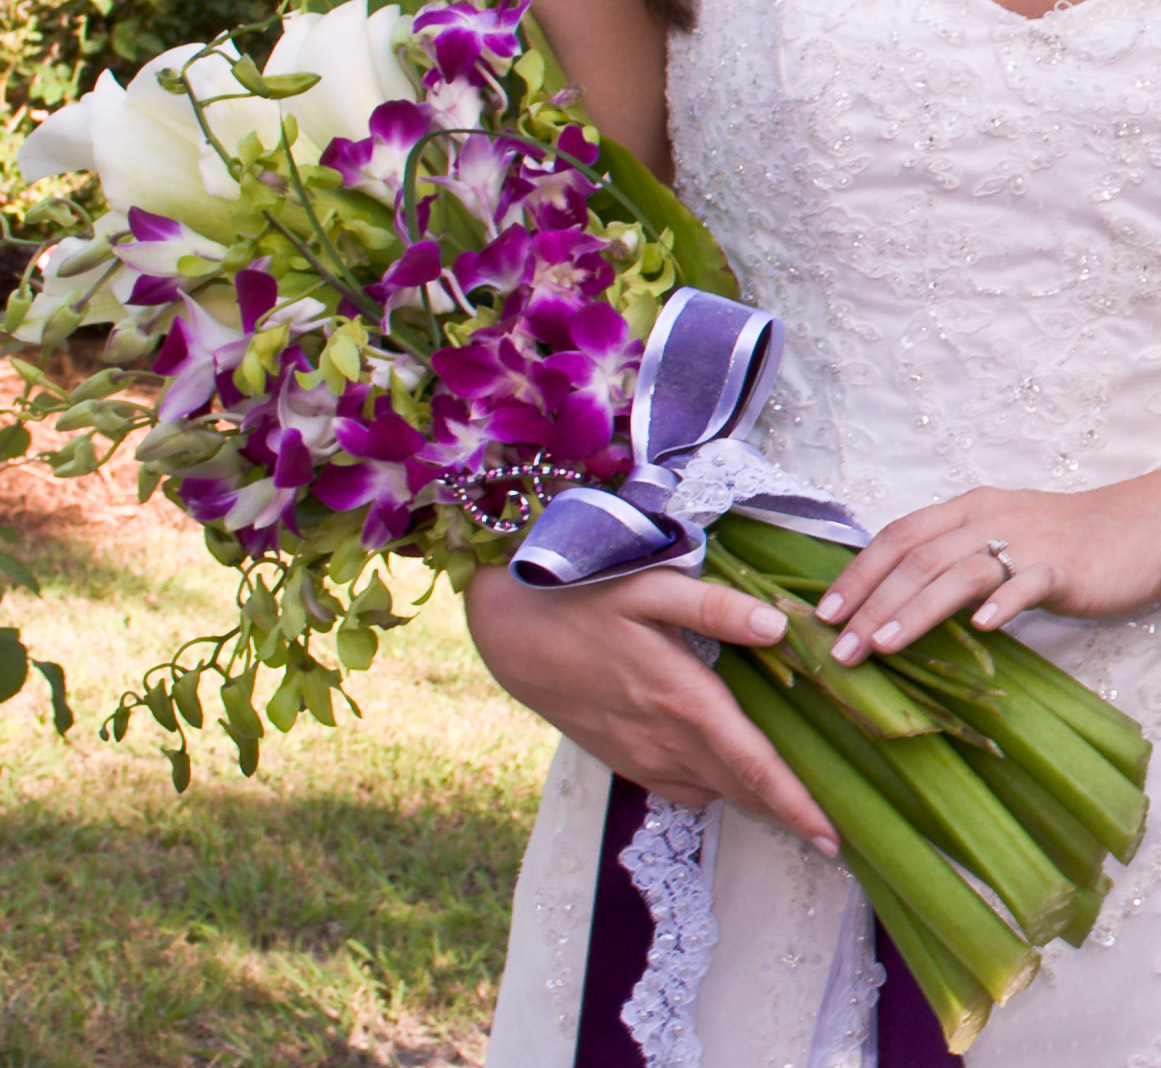 white, pink, purple, green, Bouquet, Calla, Orchids, Lily, llc, Arm, Wedding day bliss